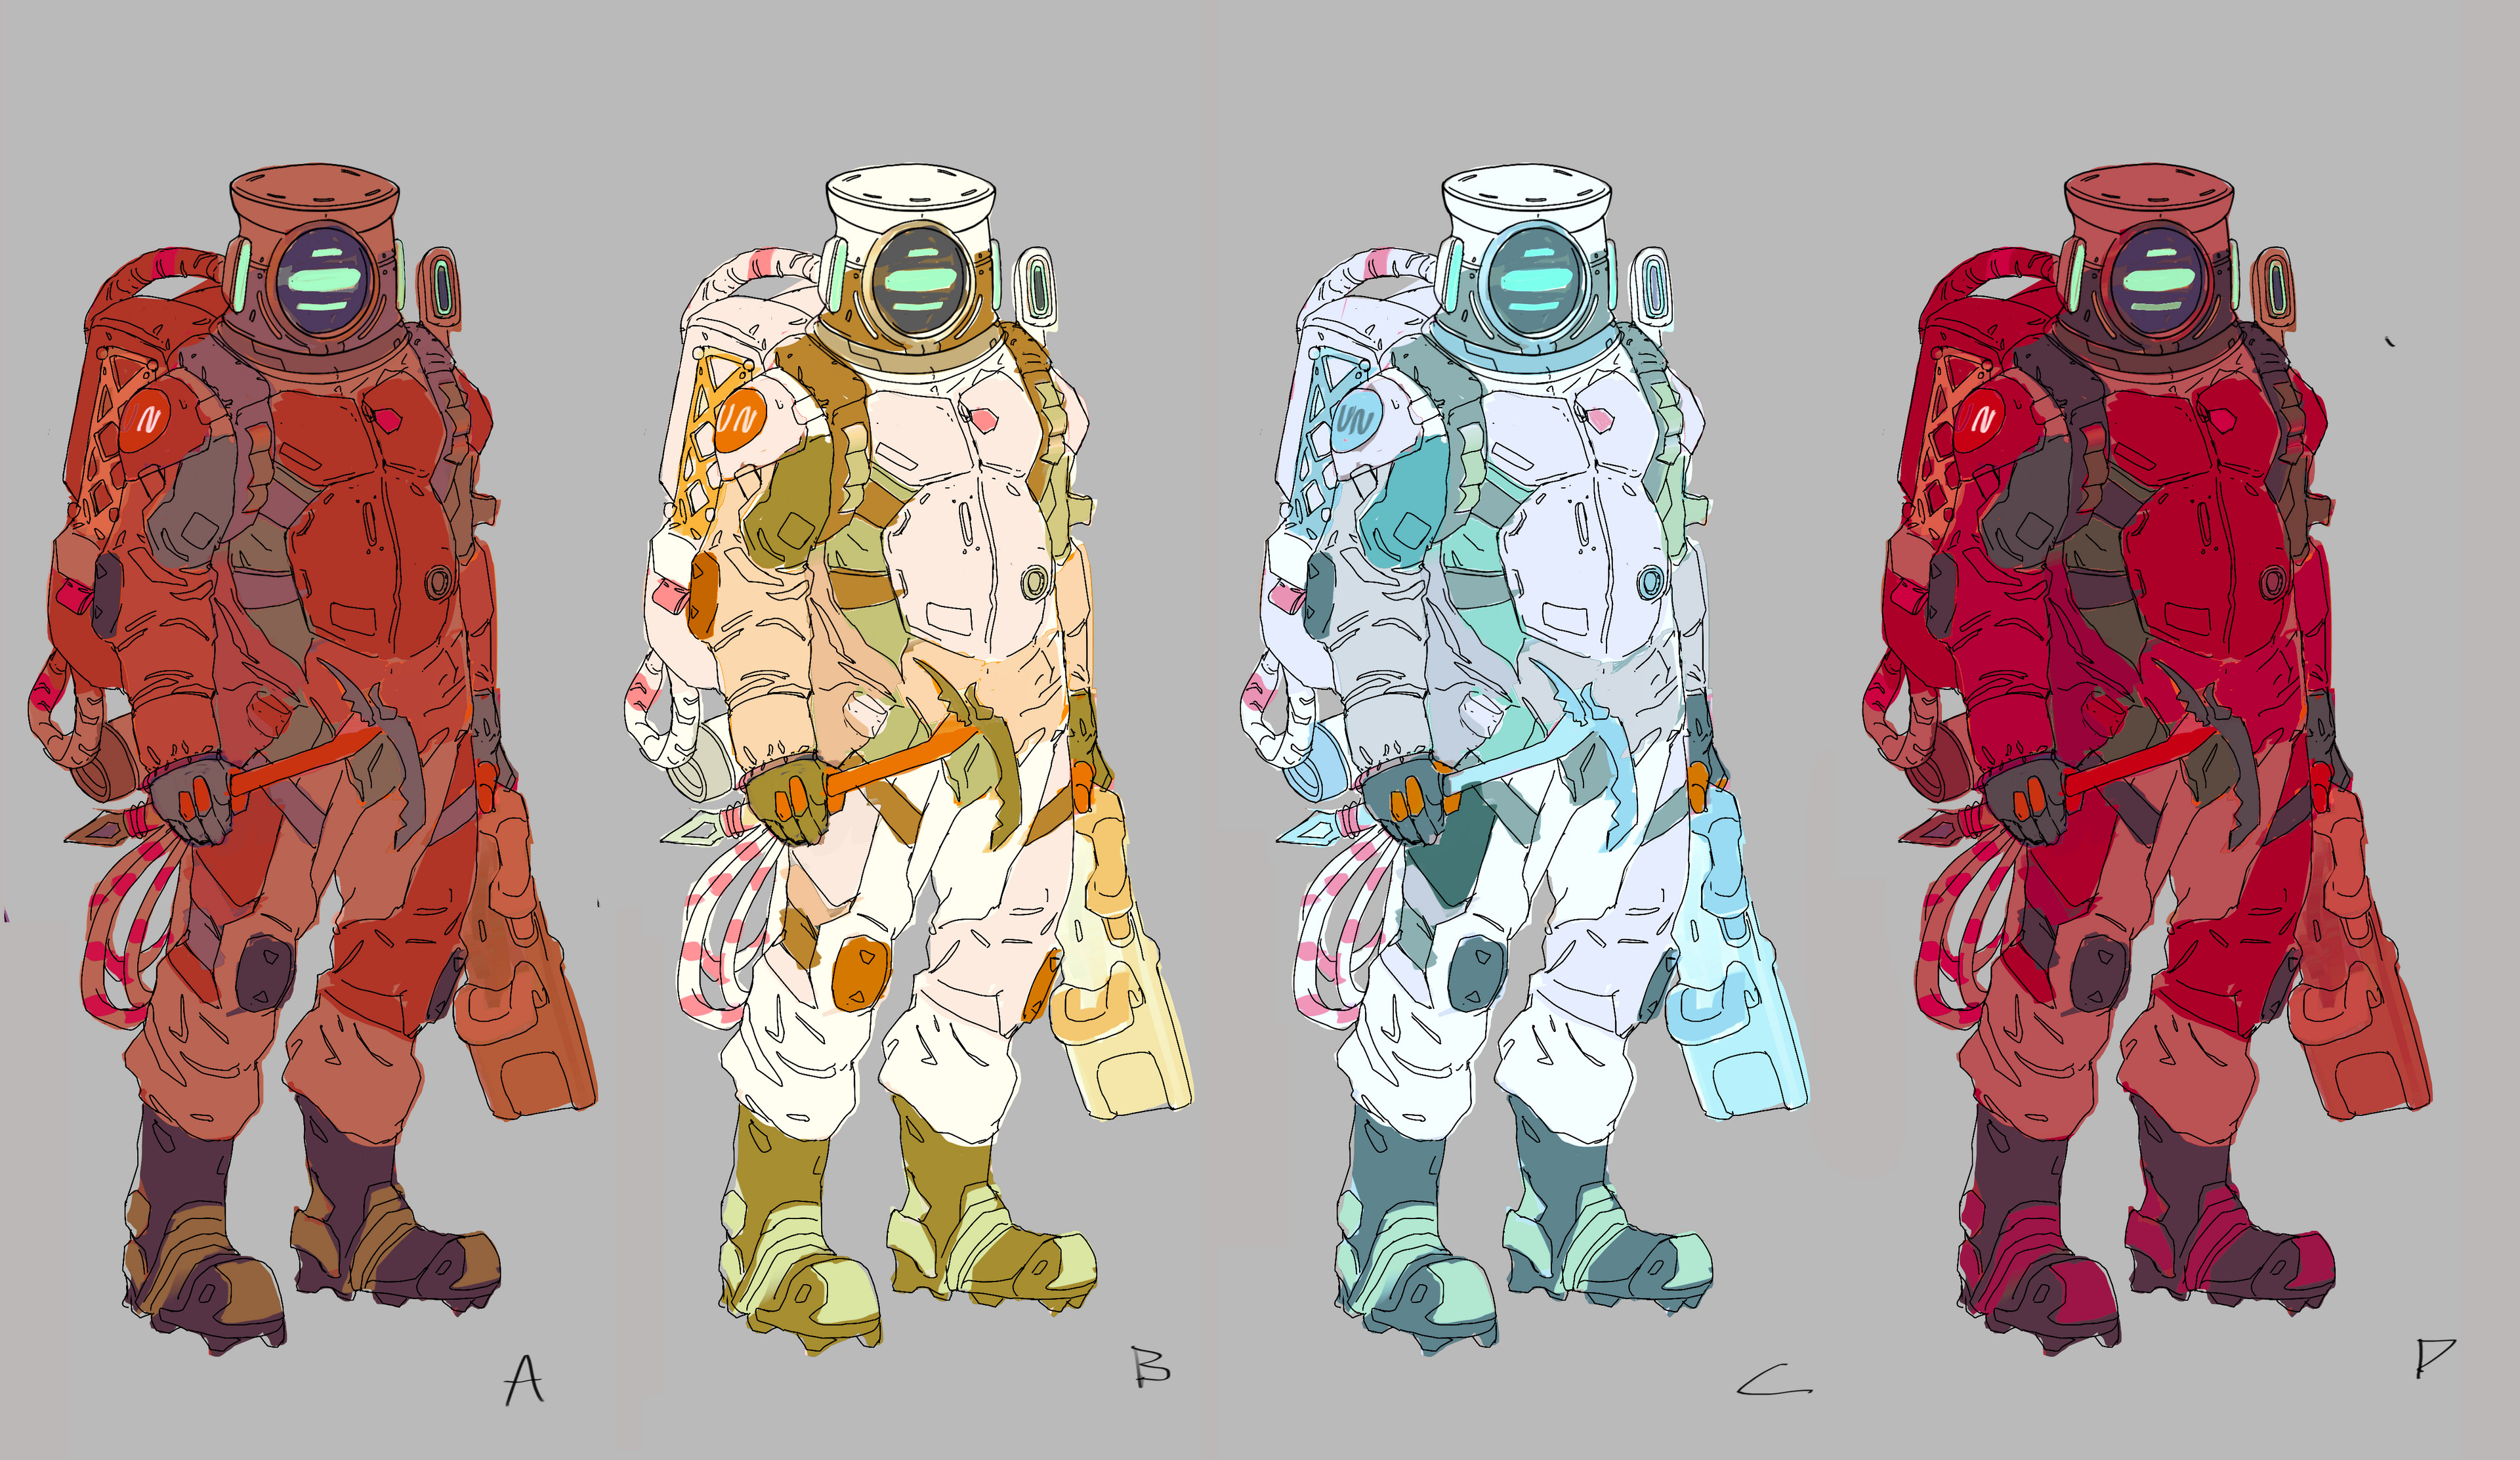 Character Design for Astronaut Protagonist who has crash landed on icy exoplanet. Created for in class demo.